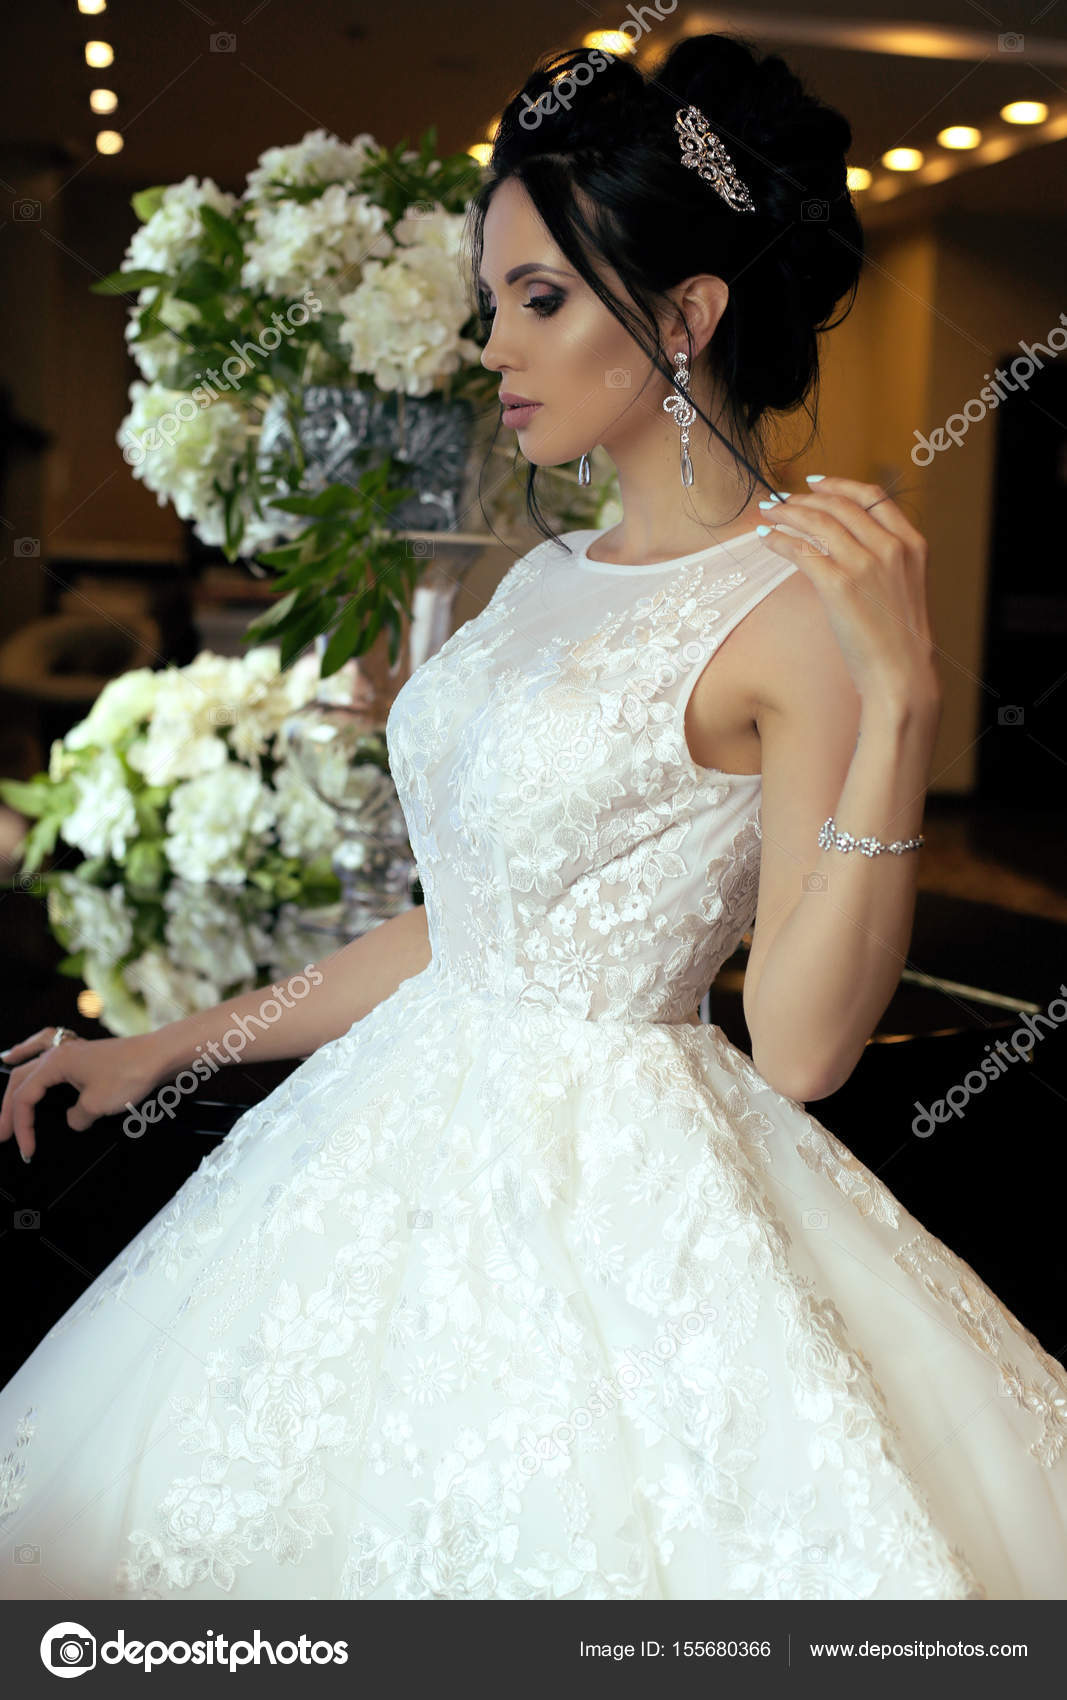 gorgeous bride with dark hair in luxurious wedding dress and acc